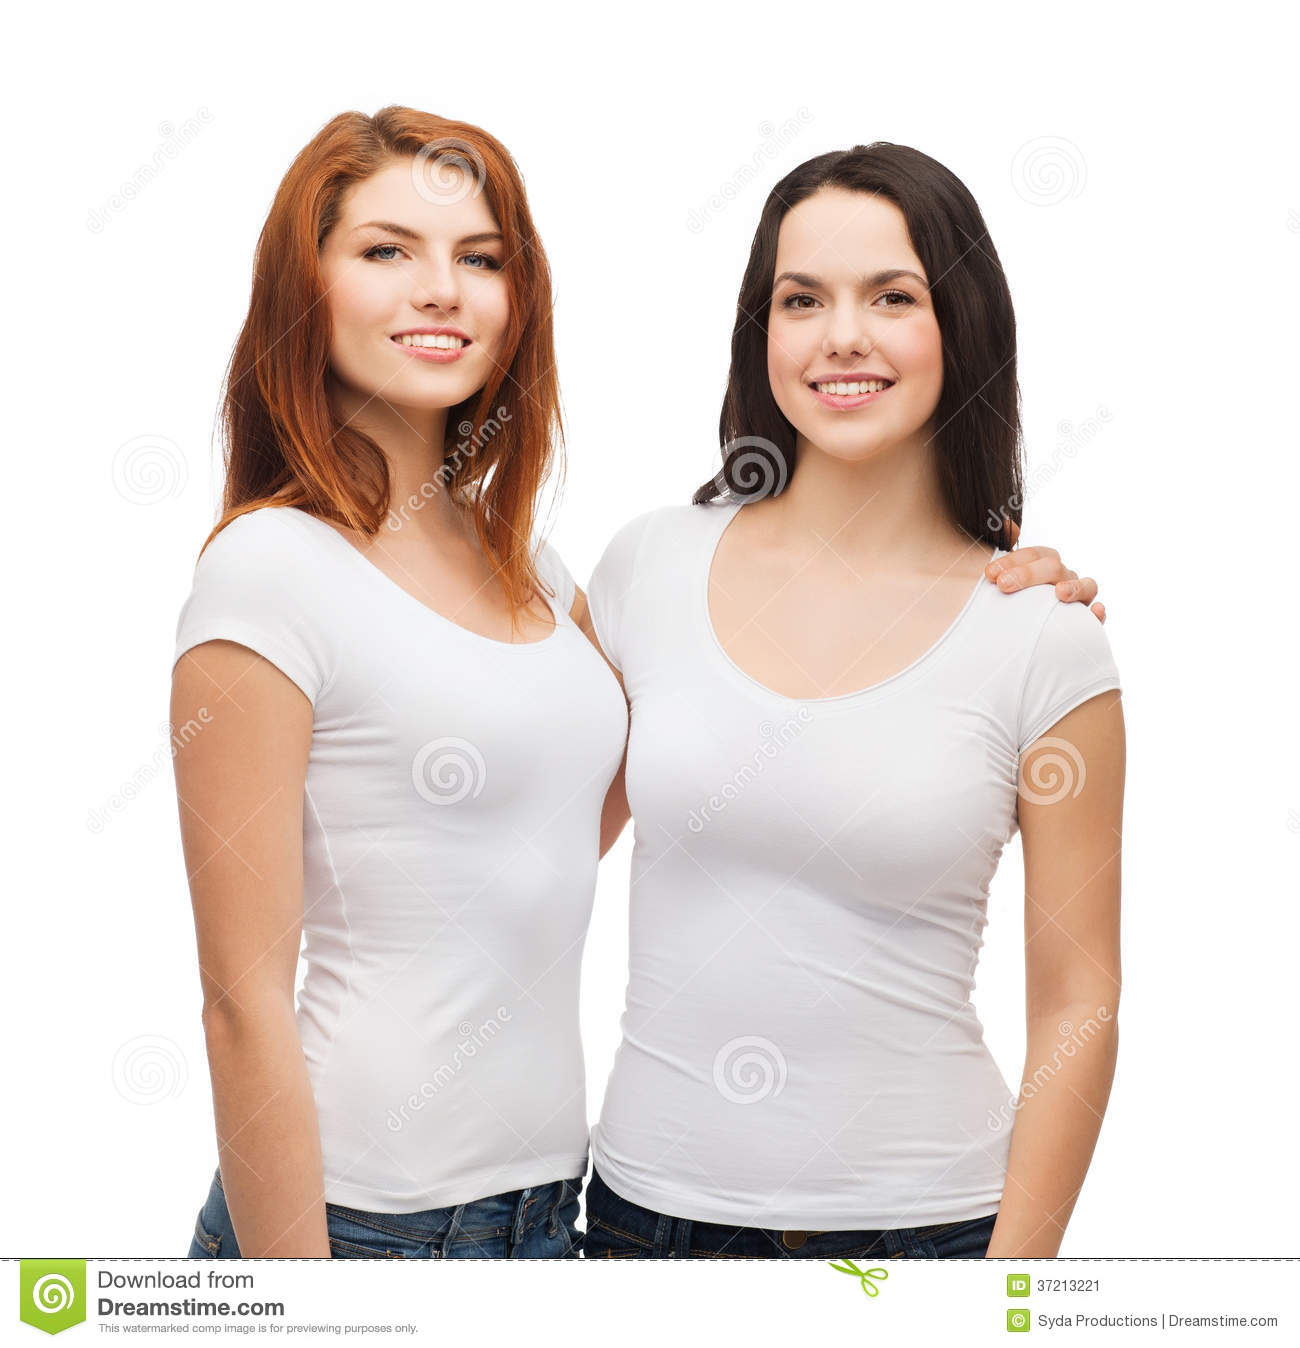 Cover your body with amazing White Girl t-shirts from Zazzle. Search for your new favorite shirt from thousands of great designs!